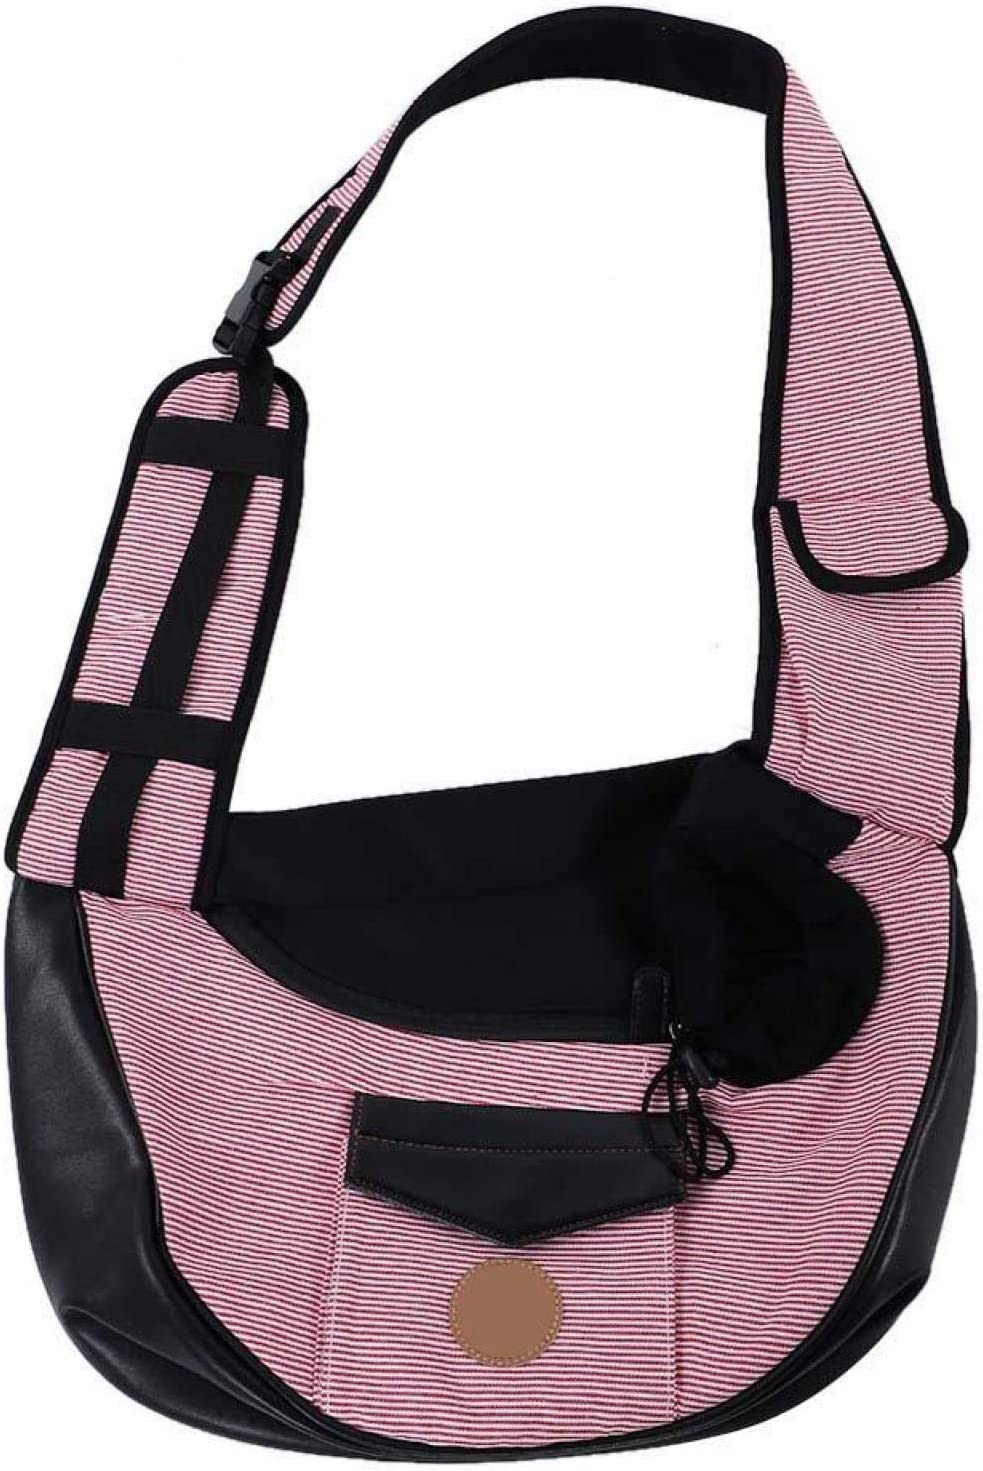 SALUTUYA pet Travel Bag Dog Very popular for Carrier Sling cat At the price Carry